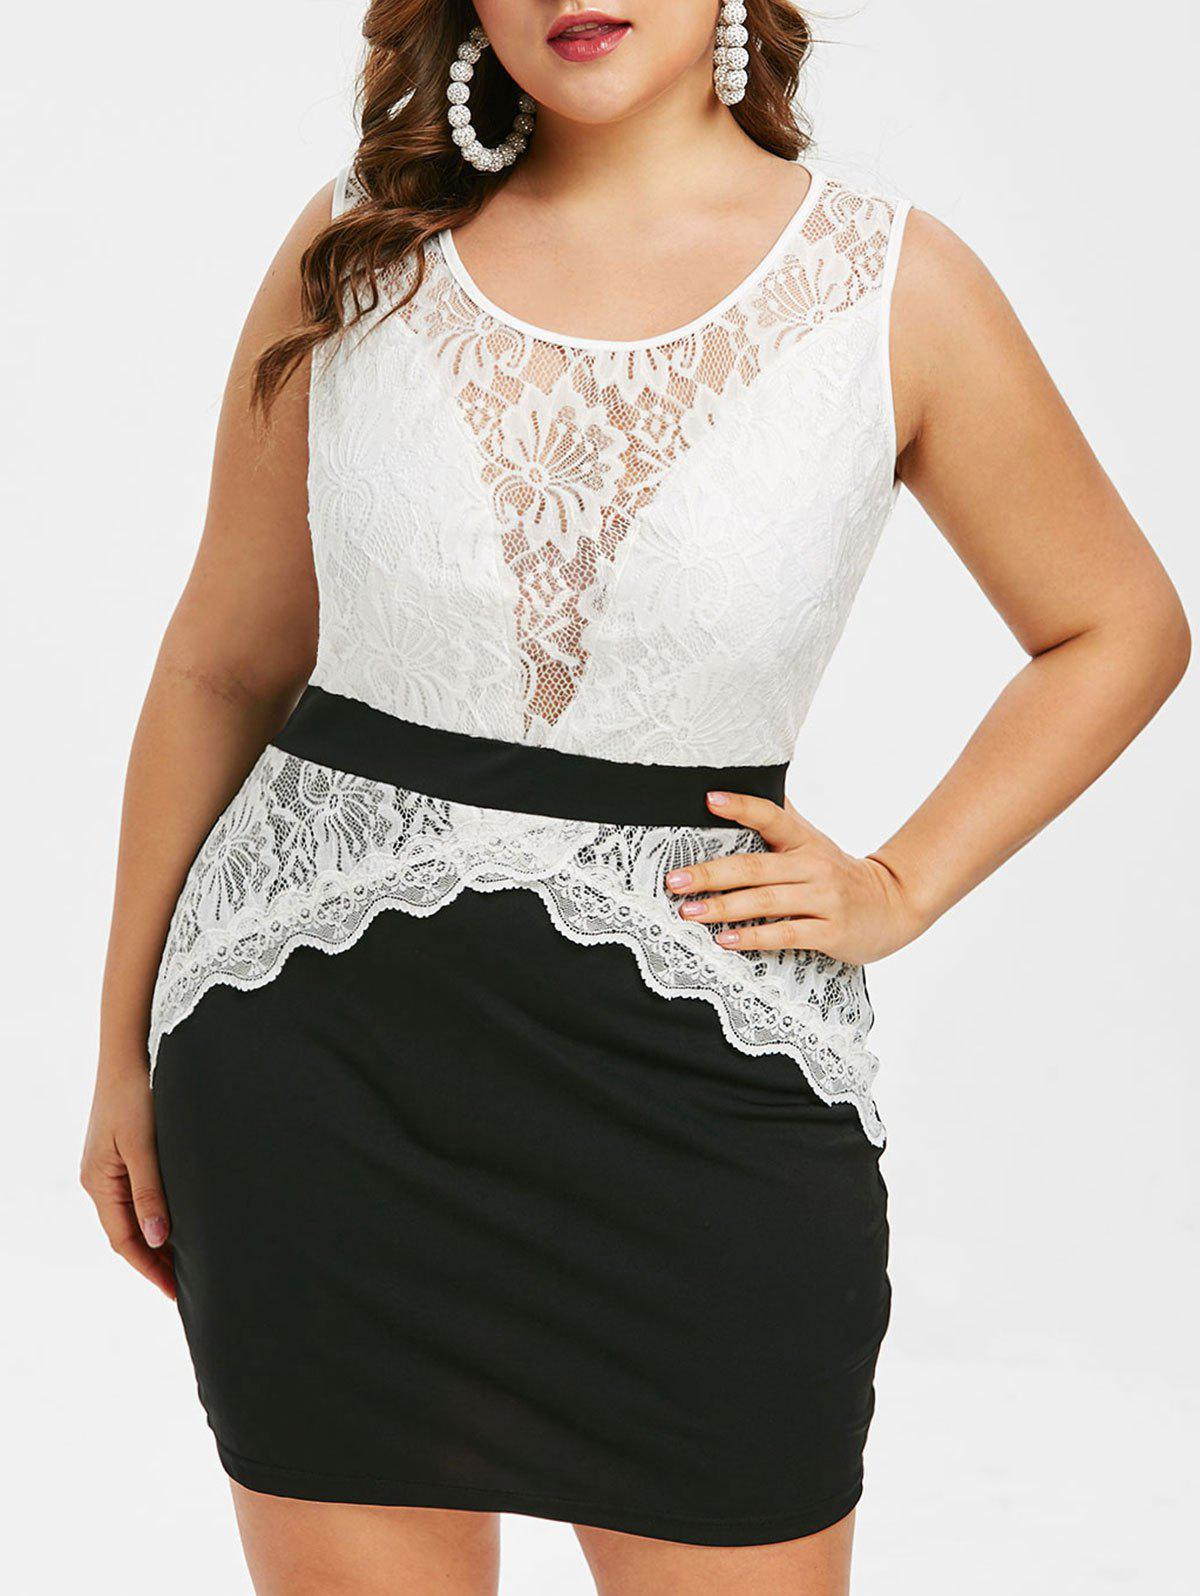 765ffa5468d39 40% OFF] Plus Size Lace Insert Two Tone Tight Dress | Rosegal